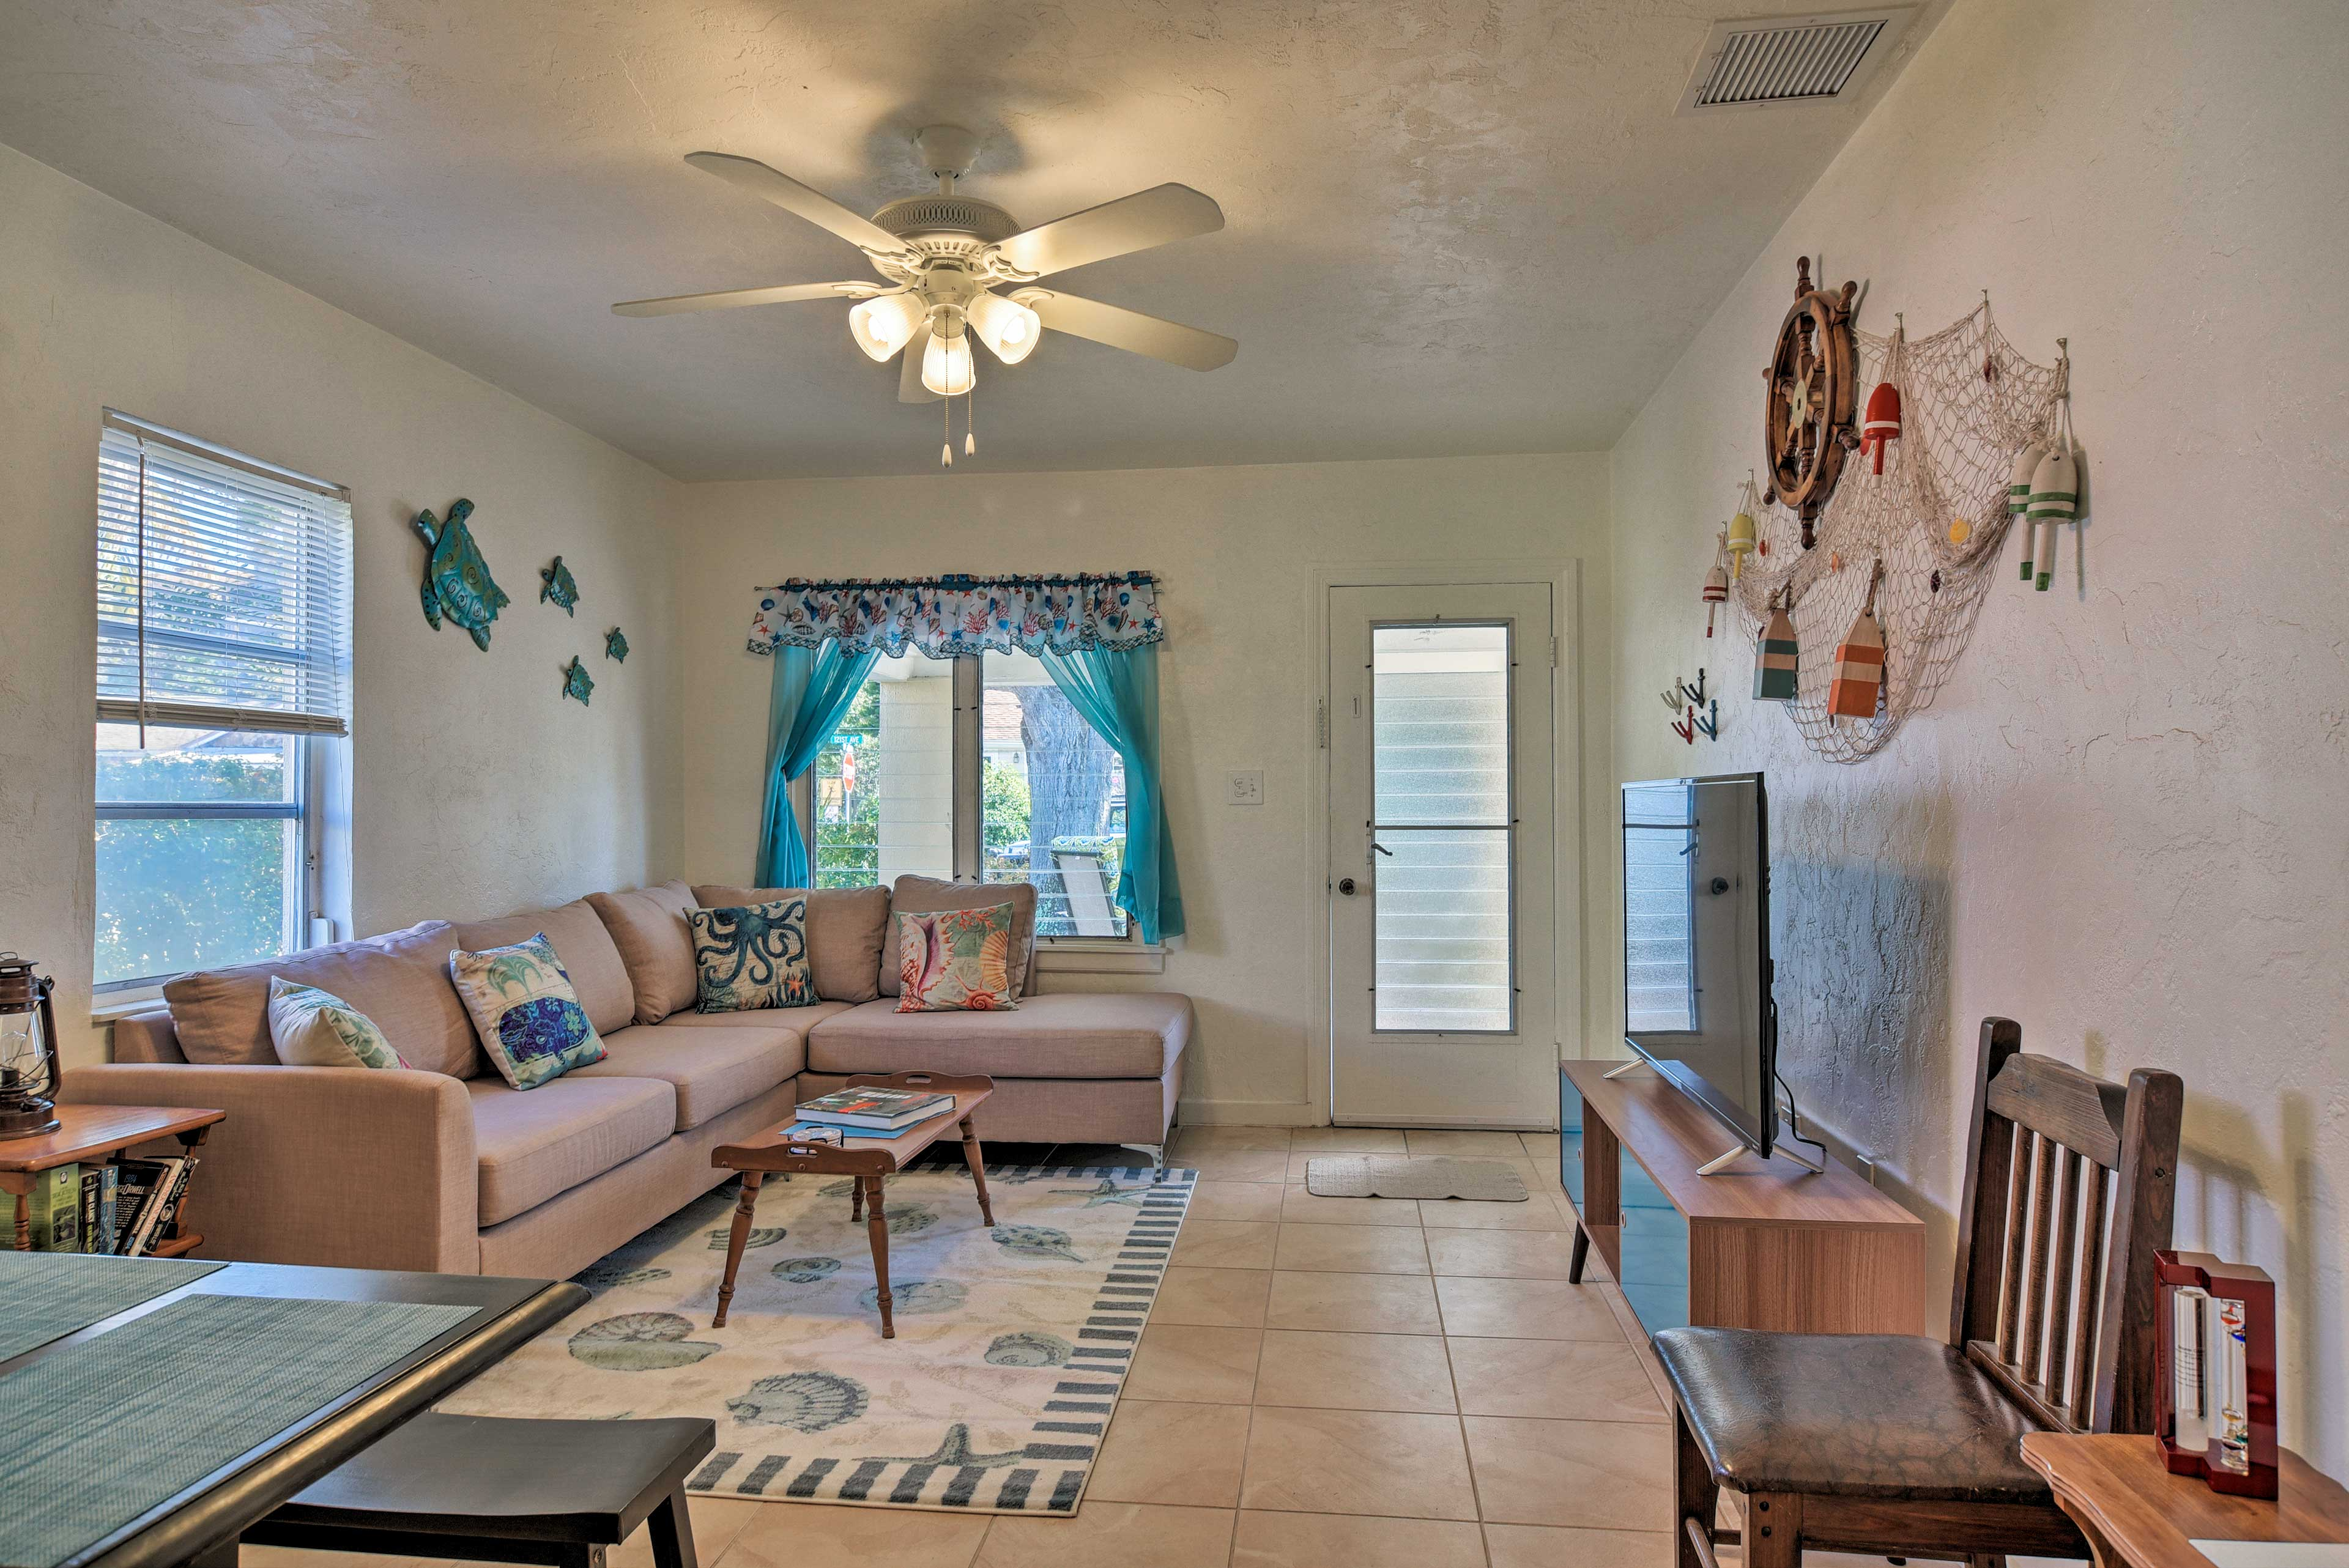 Home highlights include a cozy interior, full kitchen, garden patio, and more!